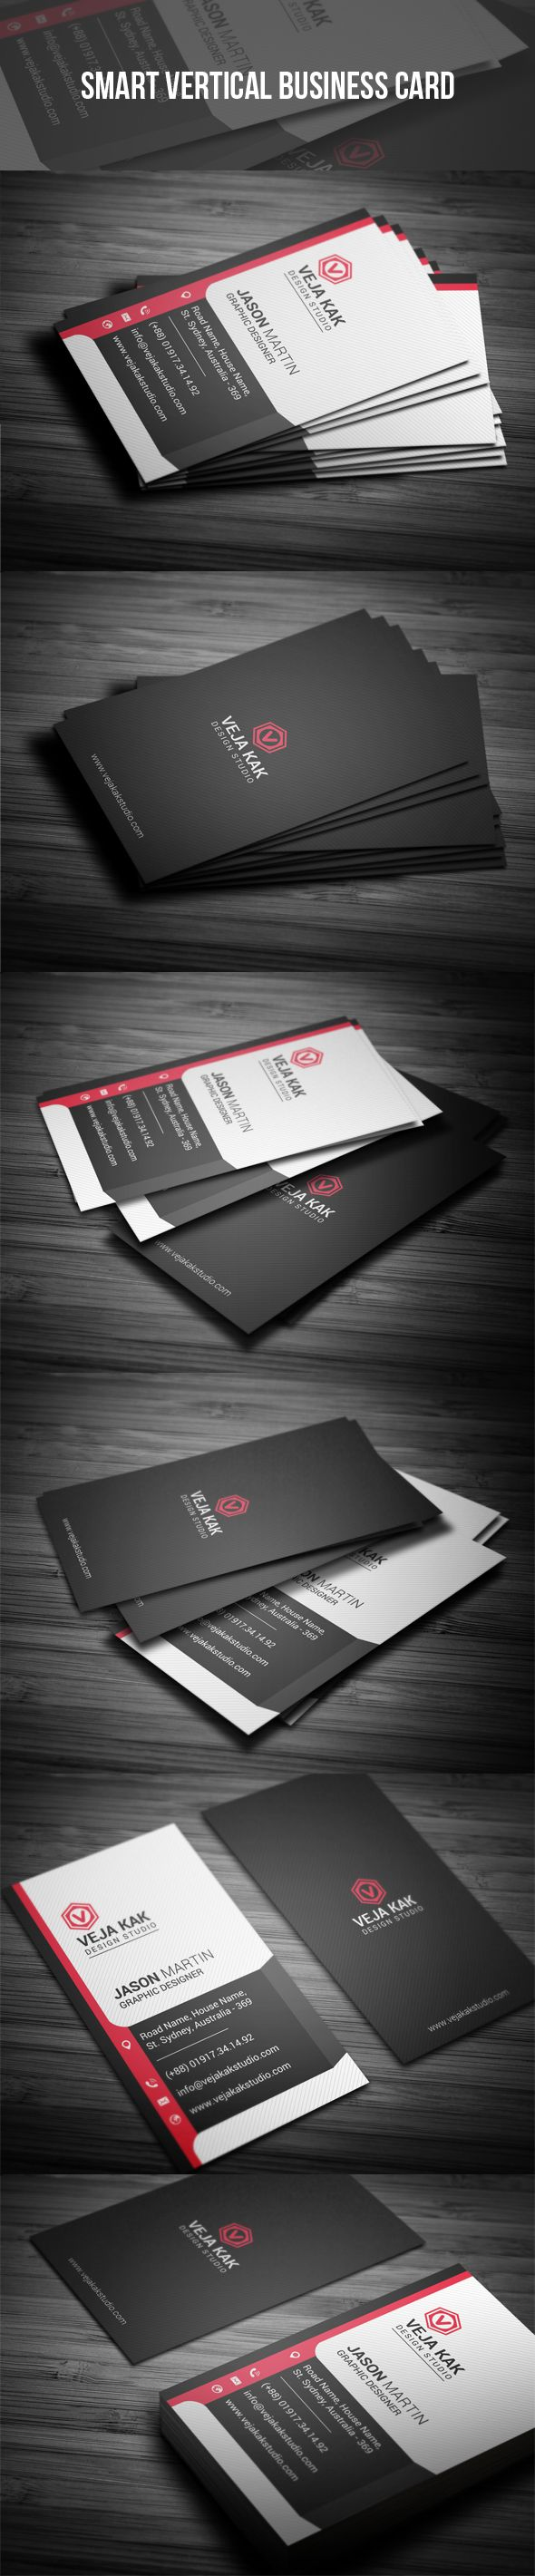 The 25+ best Vertical business cards ideas on Pinterest | Modern ...